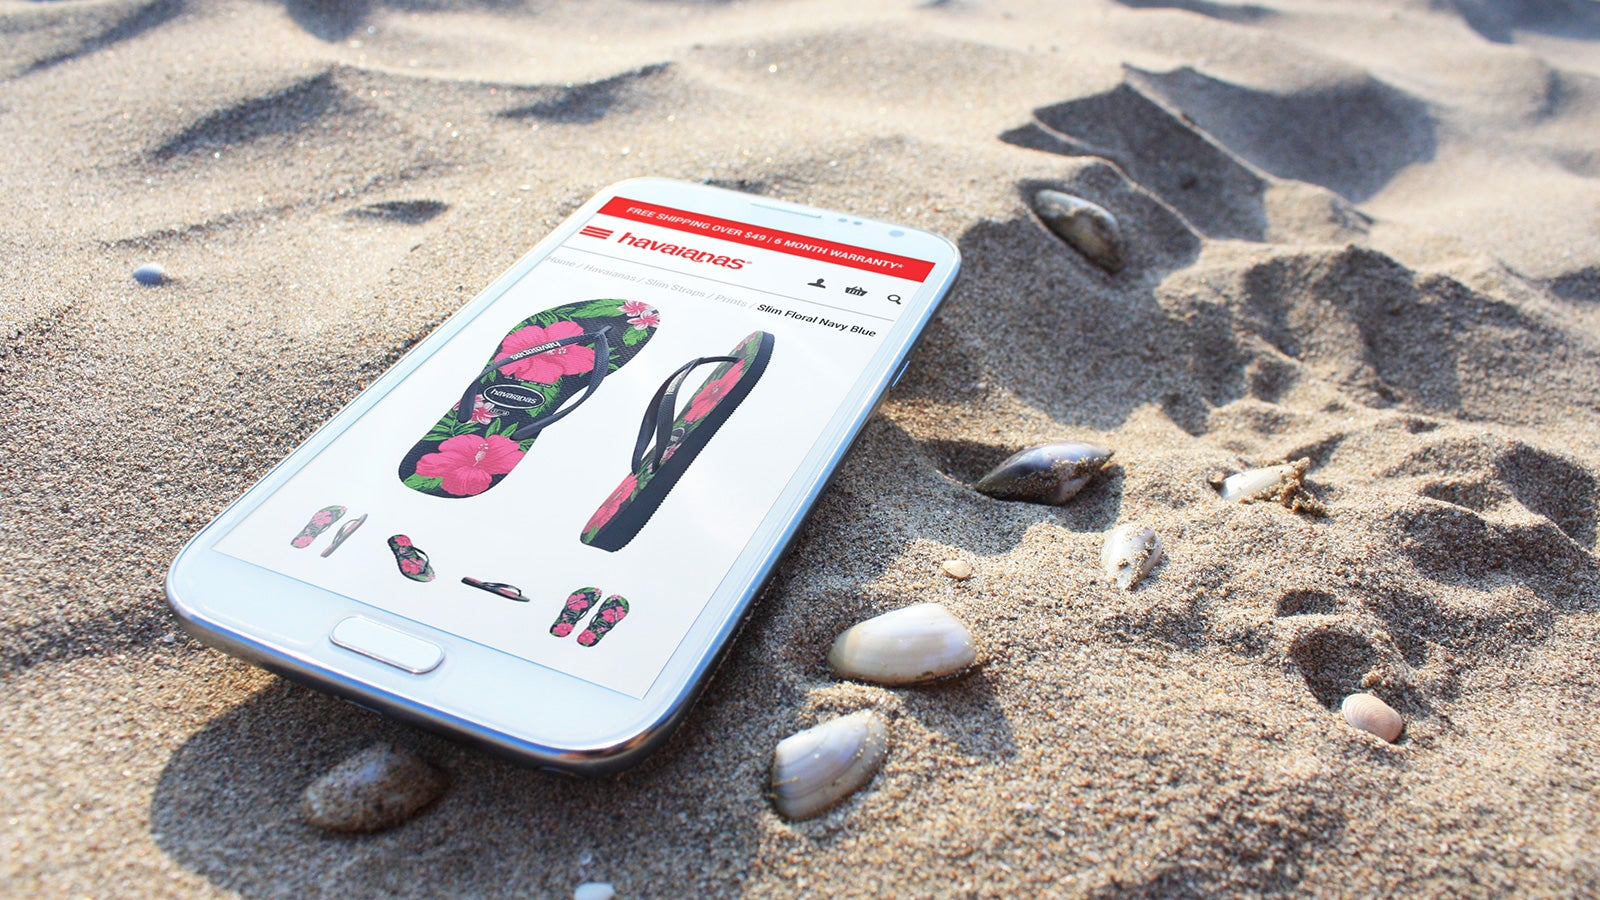 Havaianas | product page on mobile | Devotion